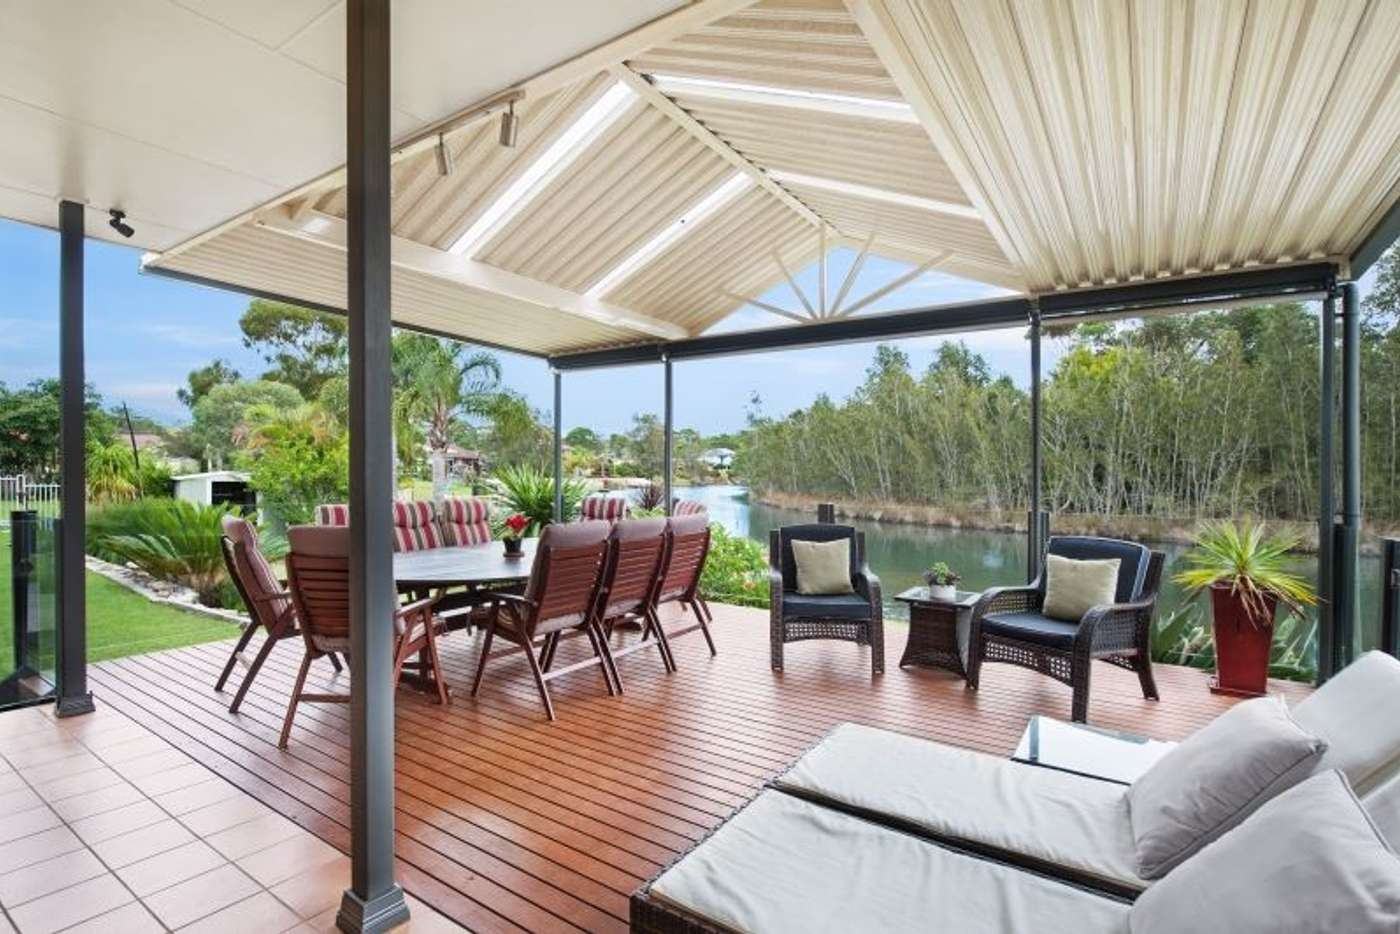 Main view of Homely house listing, 17 Aney Street, Lake Conjola NSW 2539